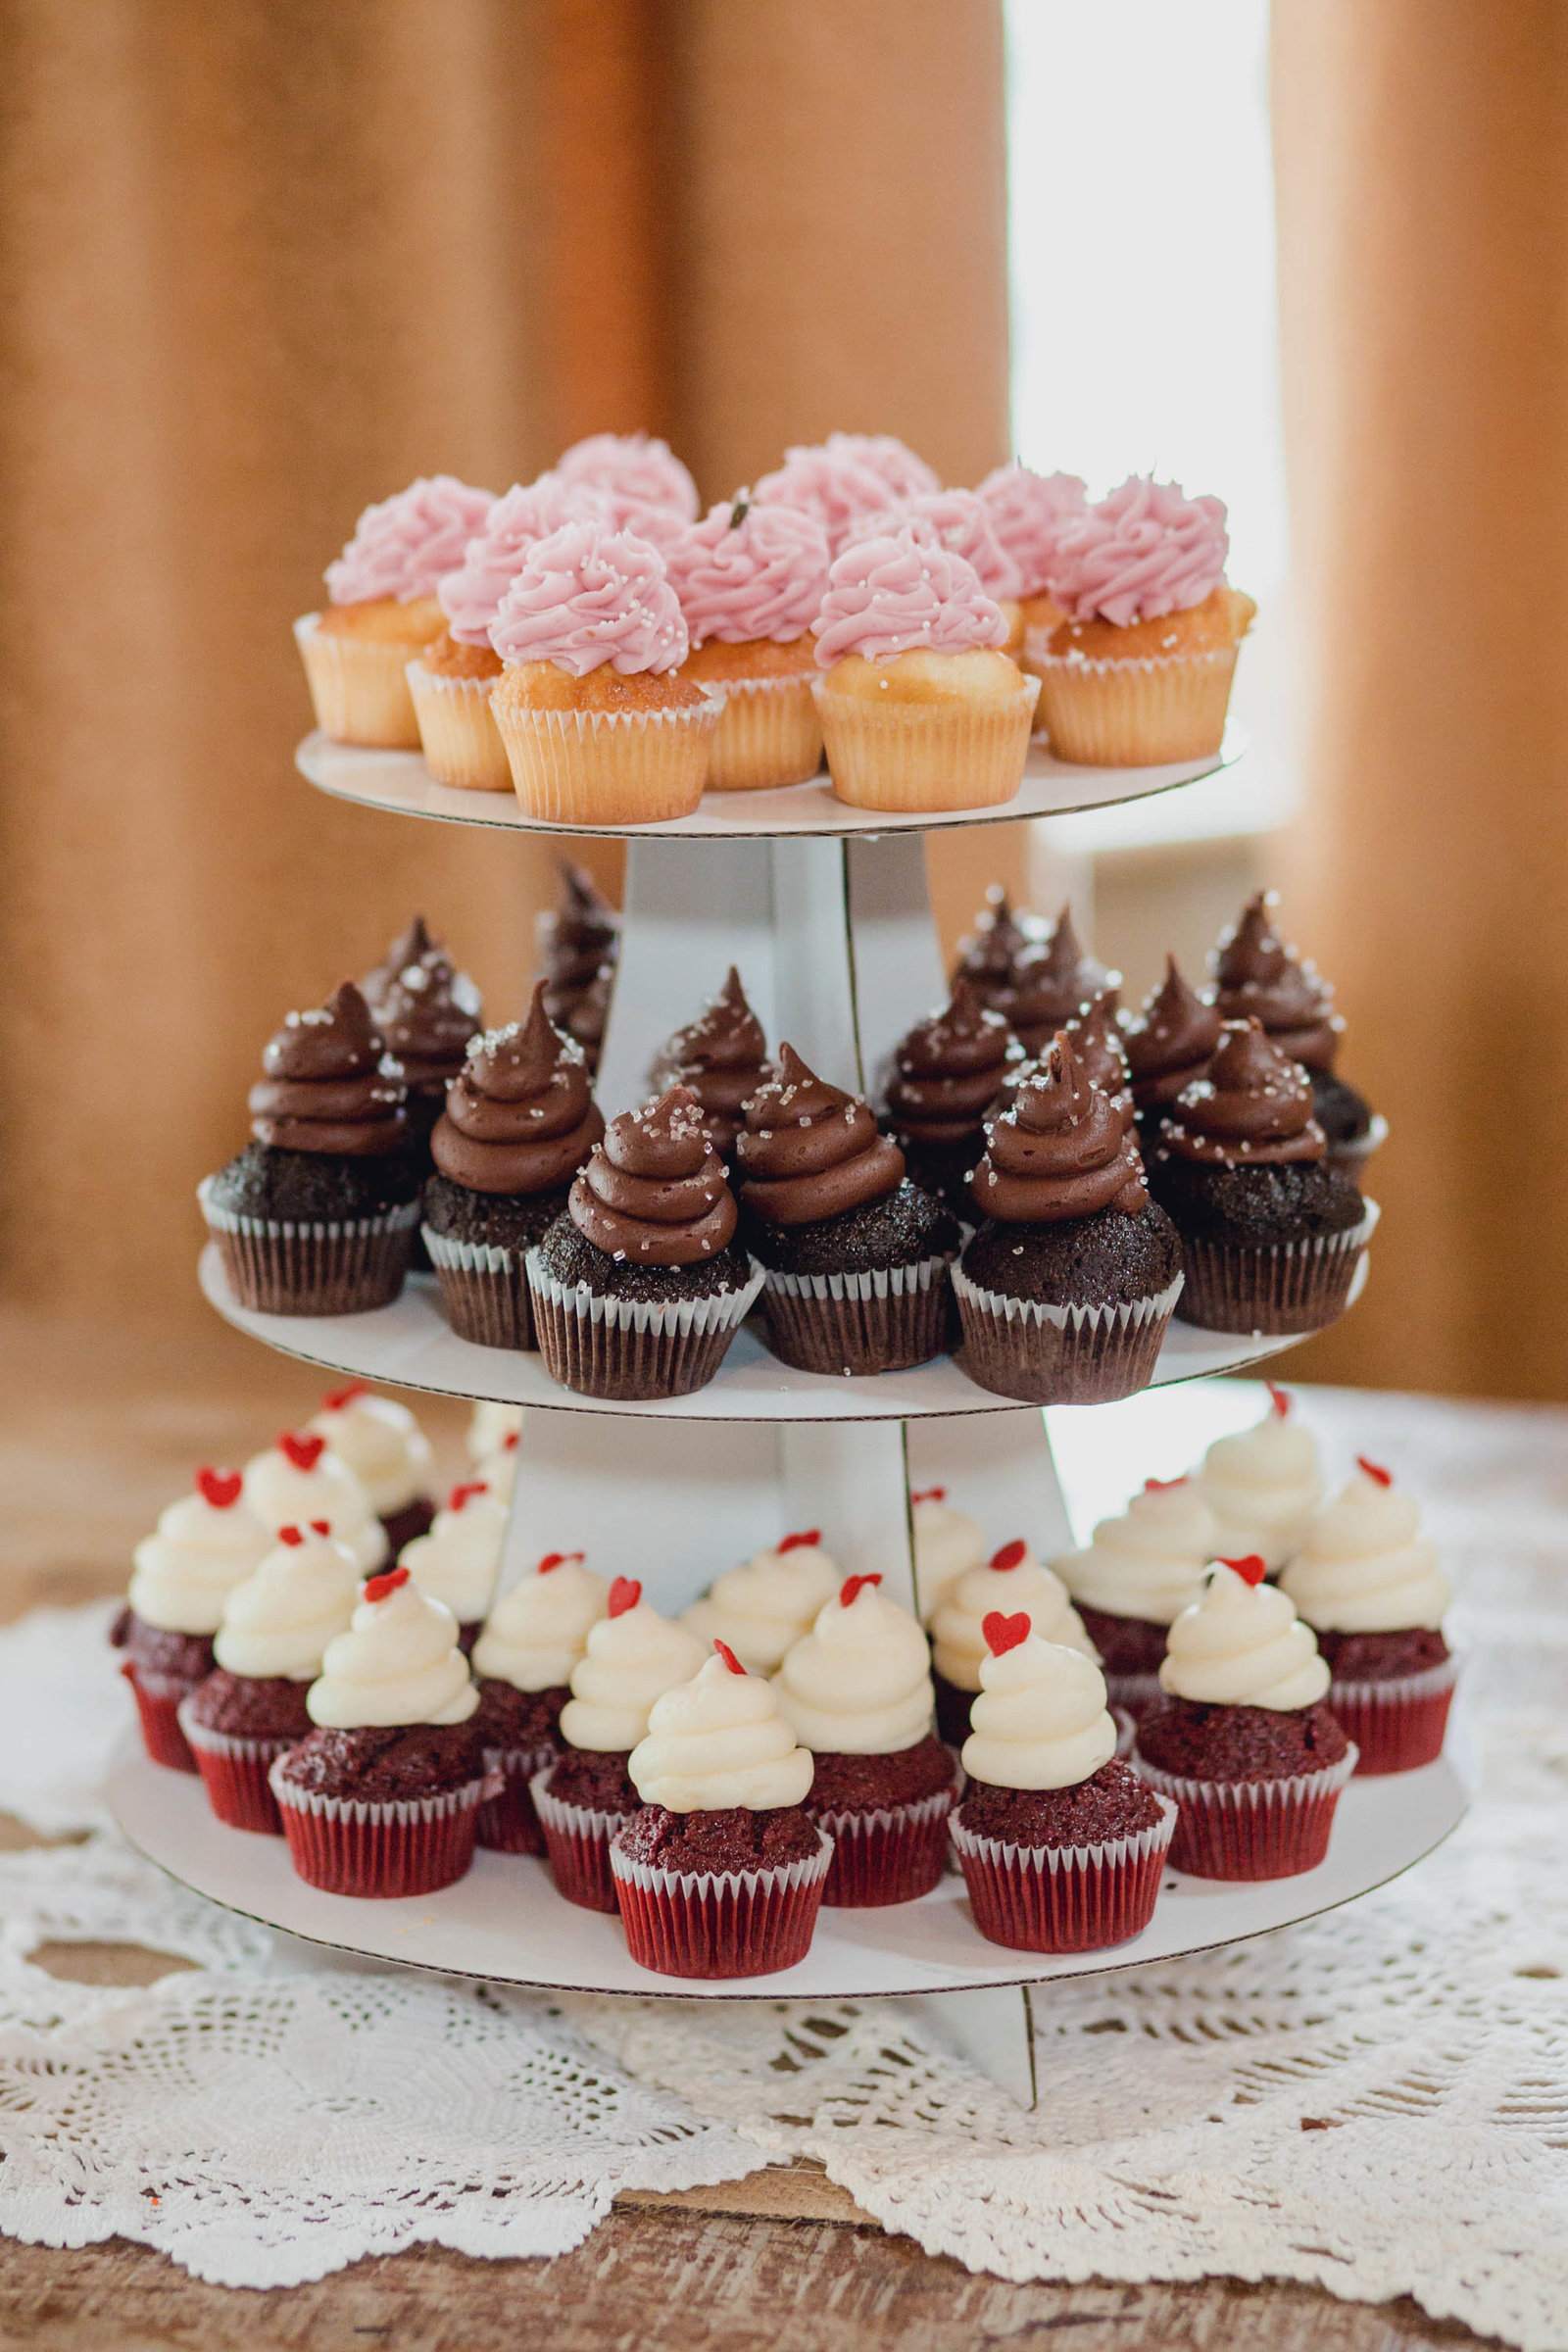 cupcake-reception-creek-club-ion-charleston-sc-lowcountry-wedding-kate-timbers-photography-8289